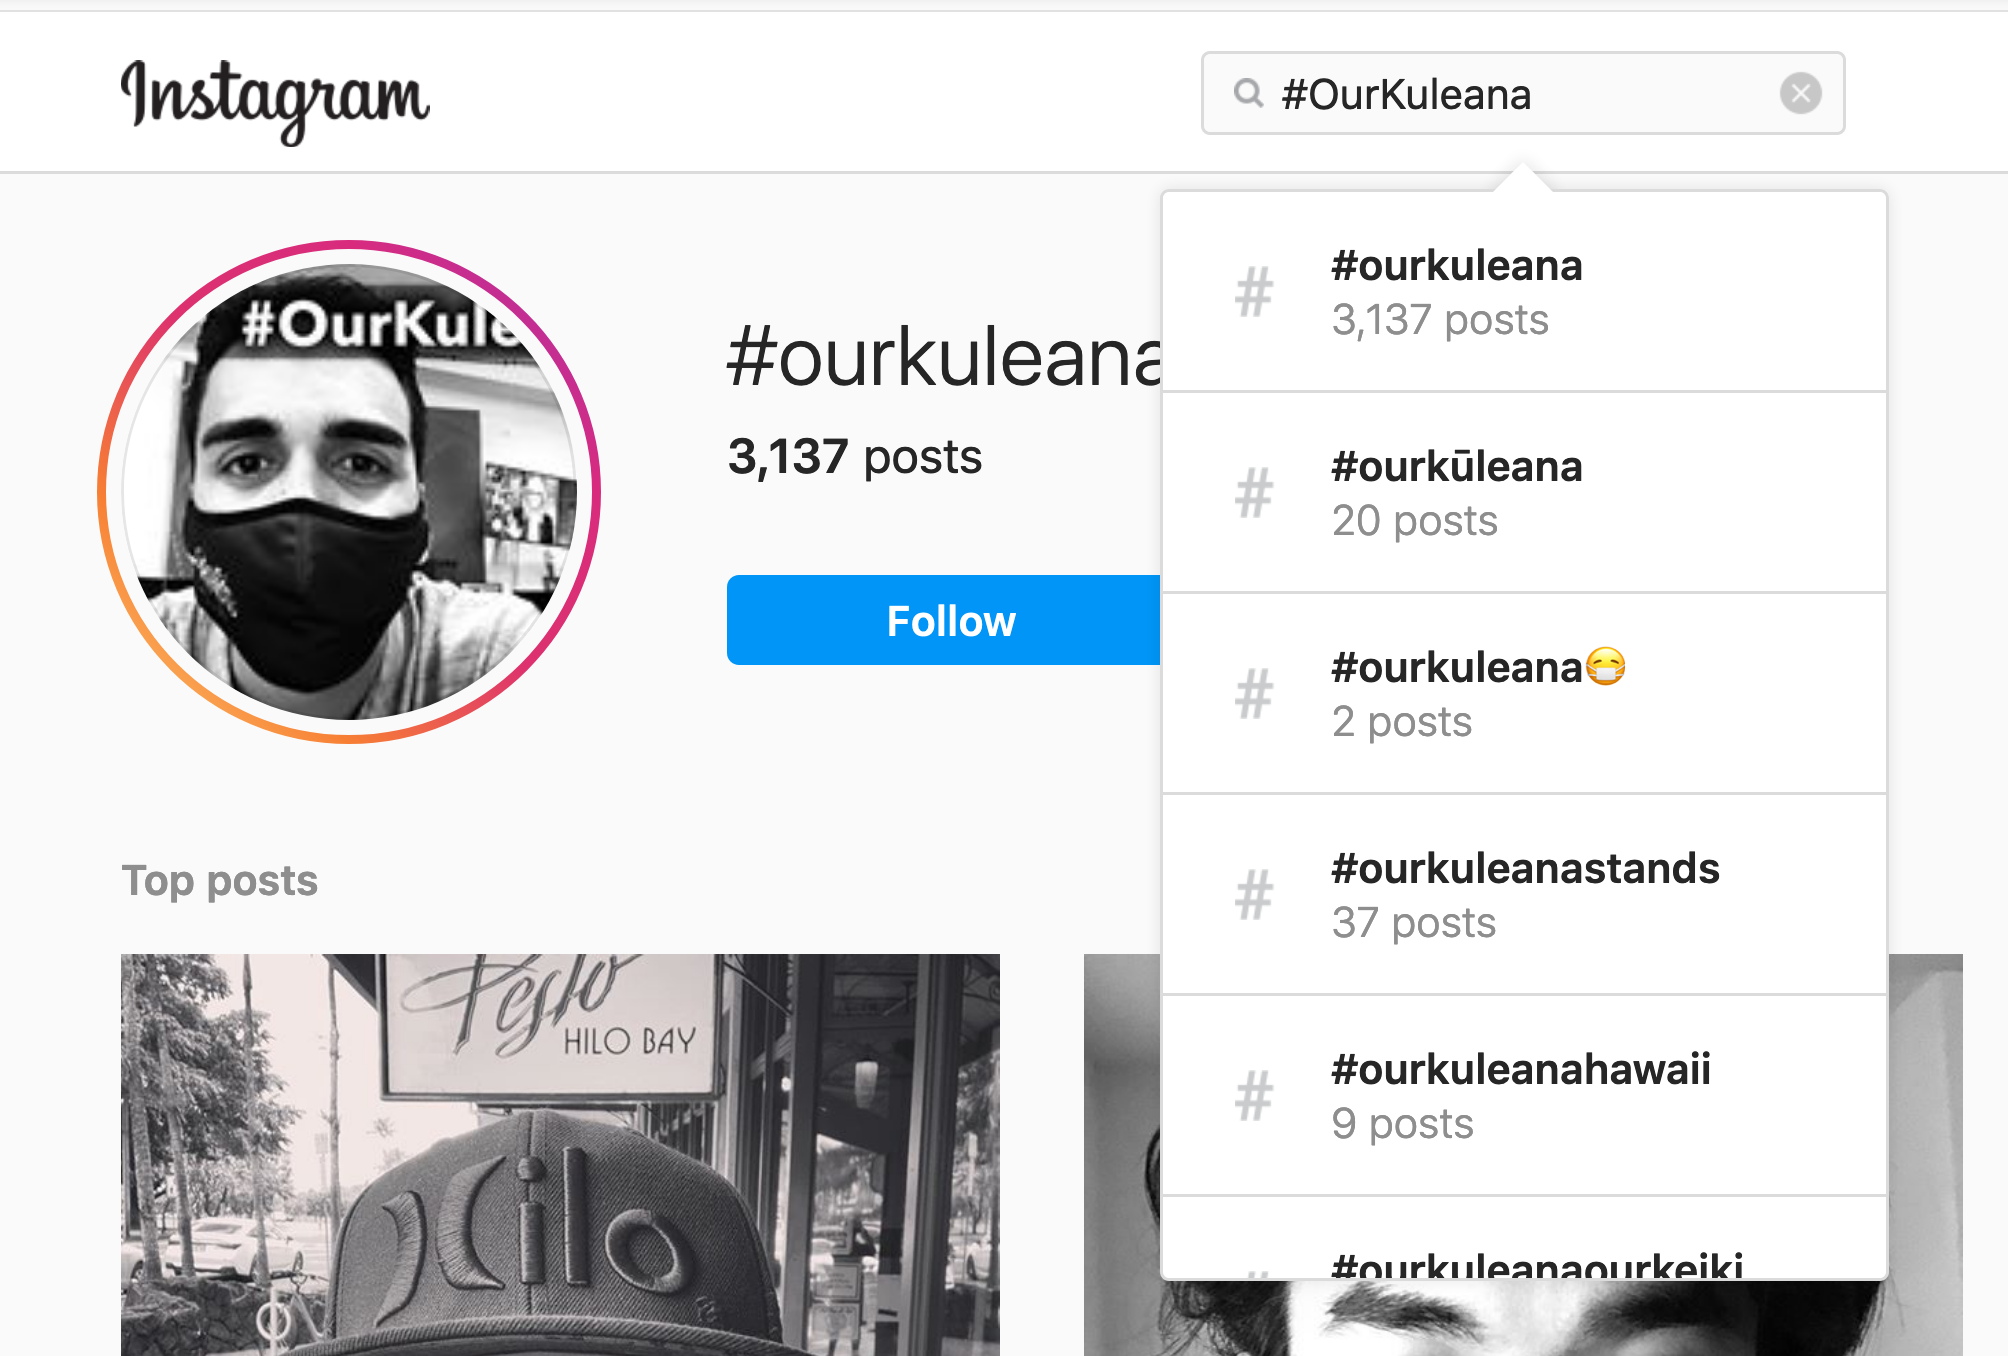 search results on instagram for the #OurKuleana hashtag